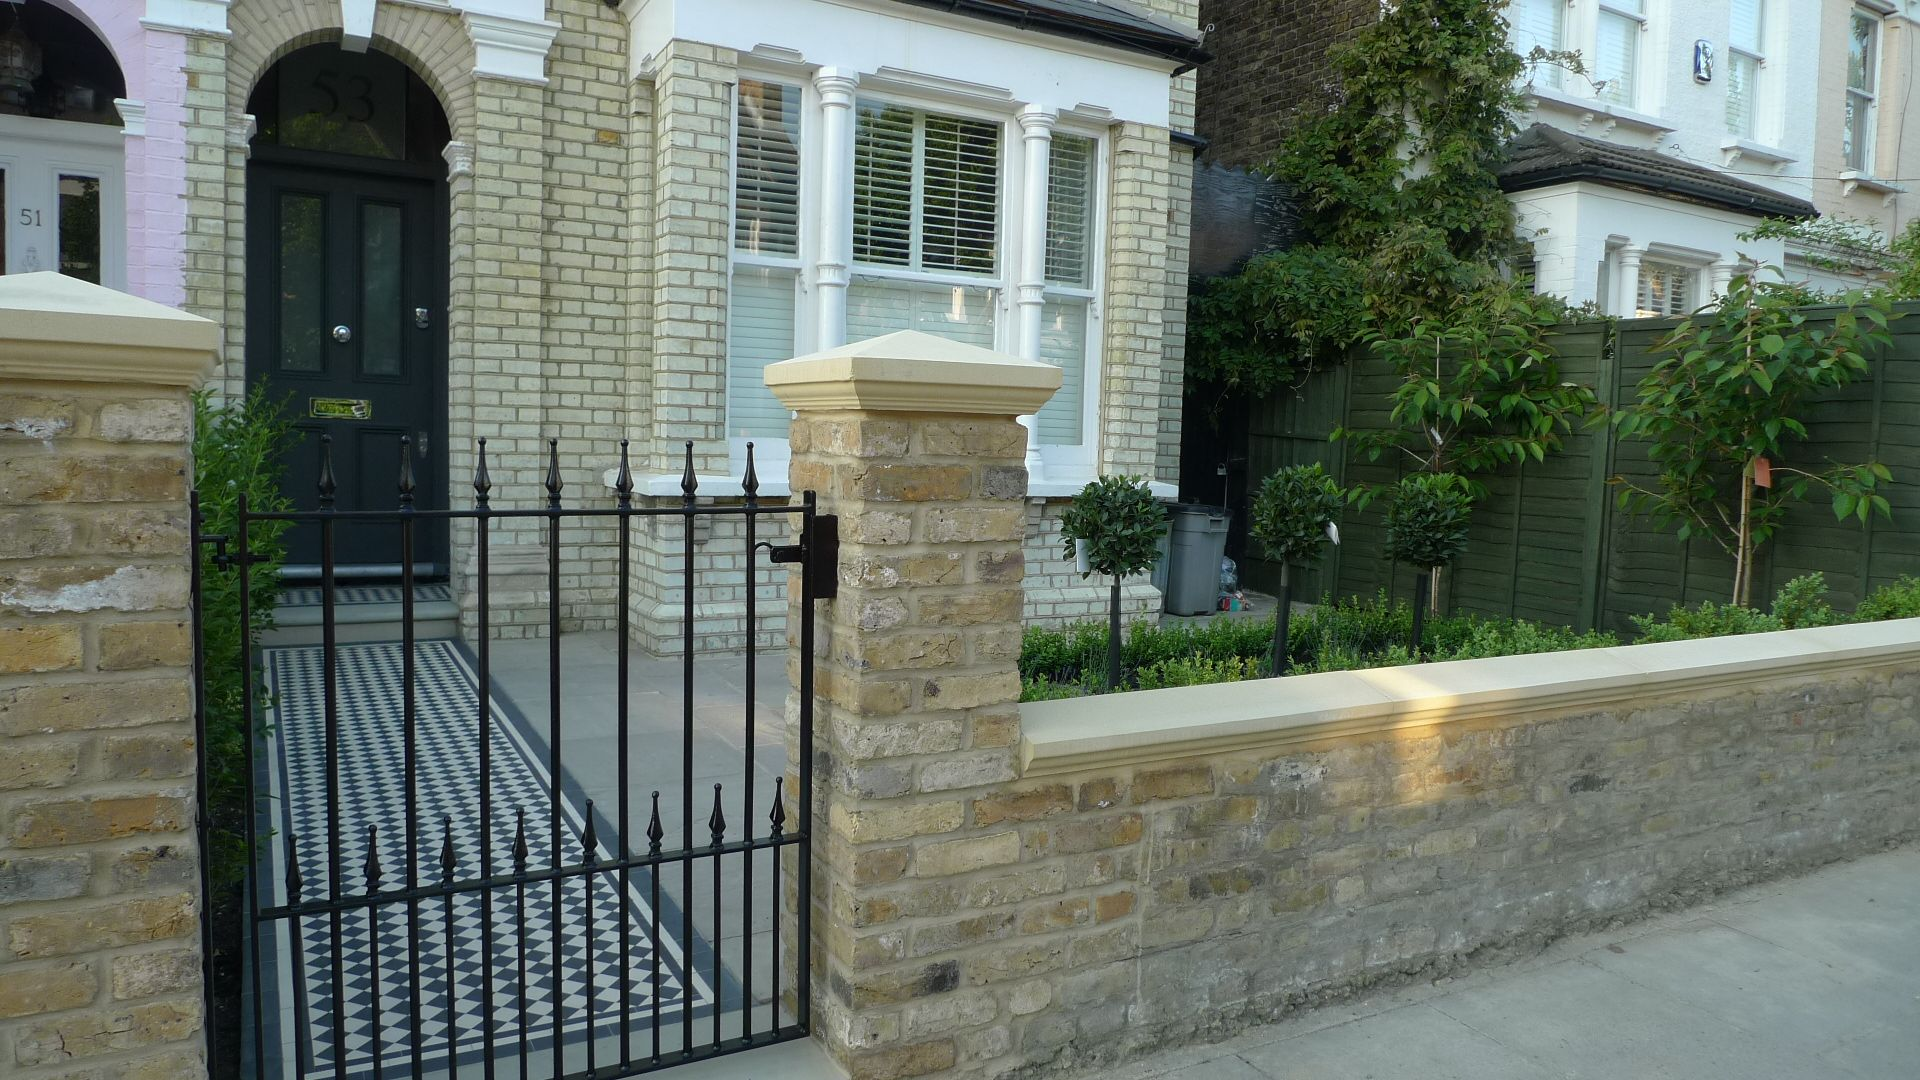 London garden blog london garden blog gardens from for Front garden fence designs